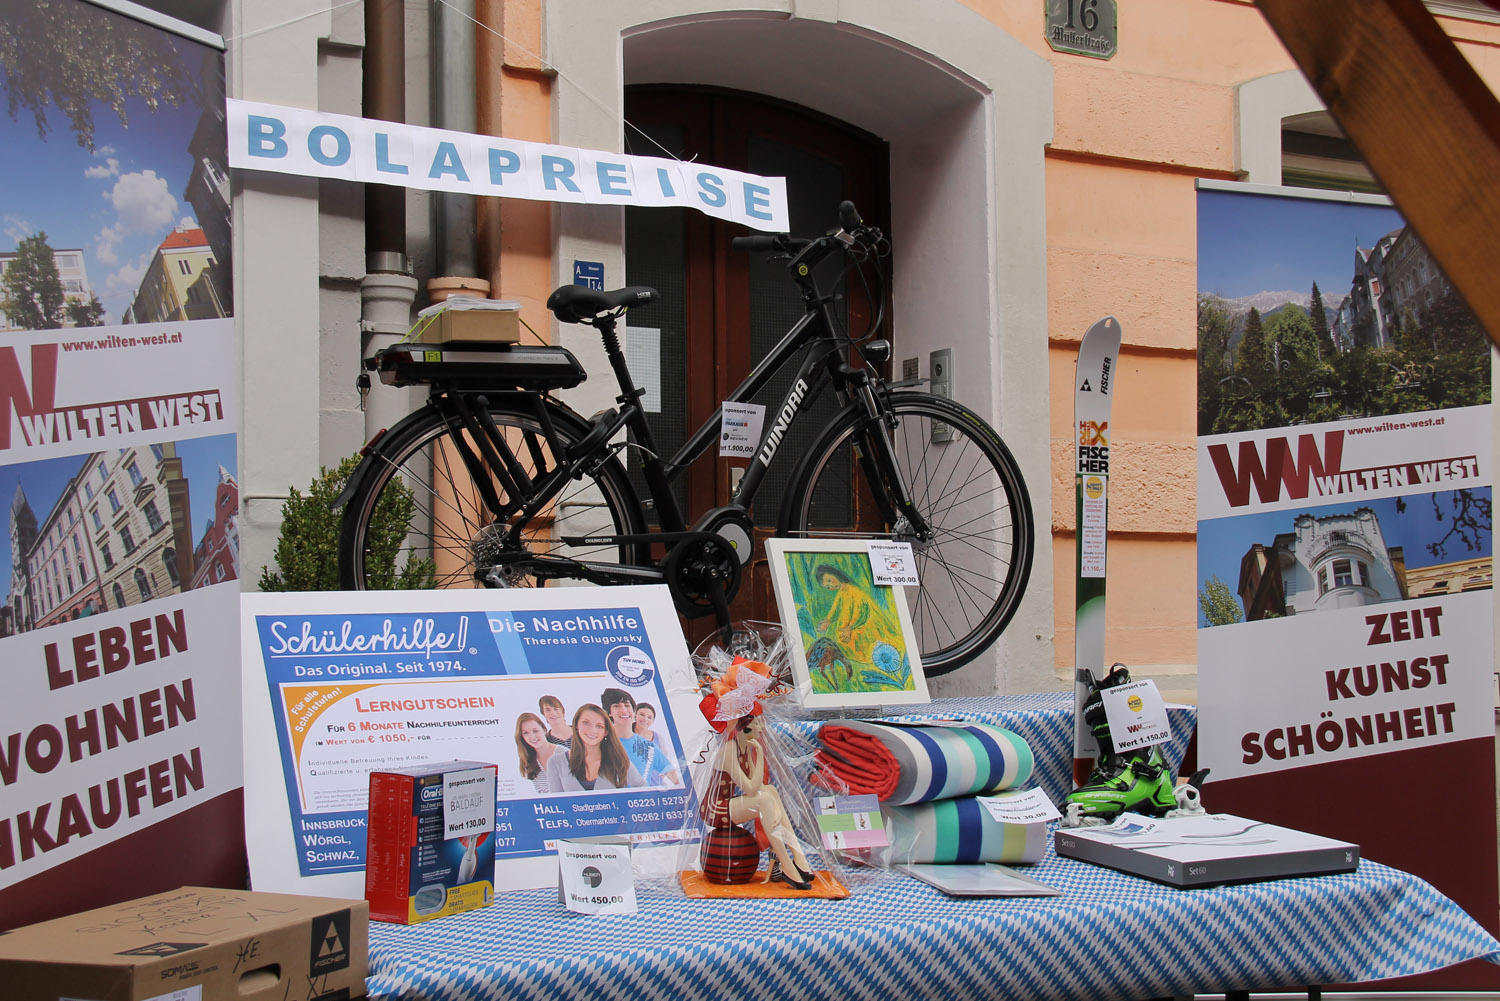 Das Oktoberfest des Marketingkreis Wilten West 2014 - 047